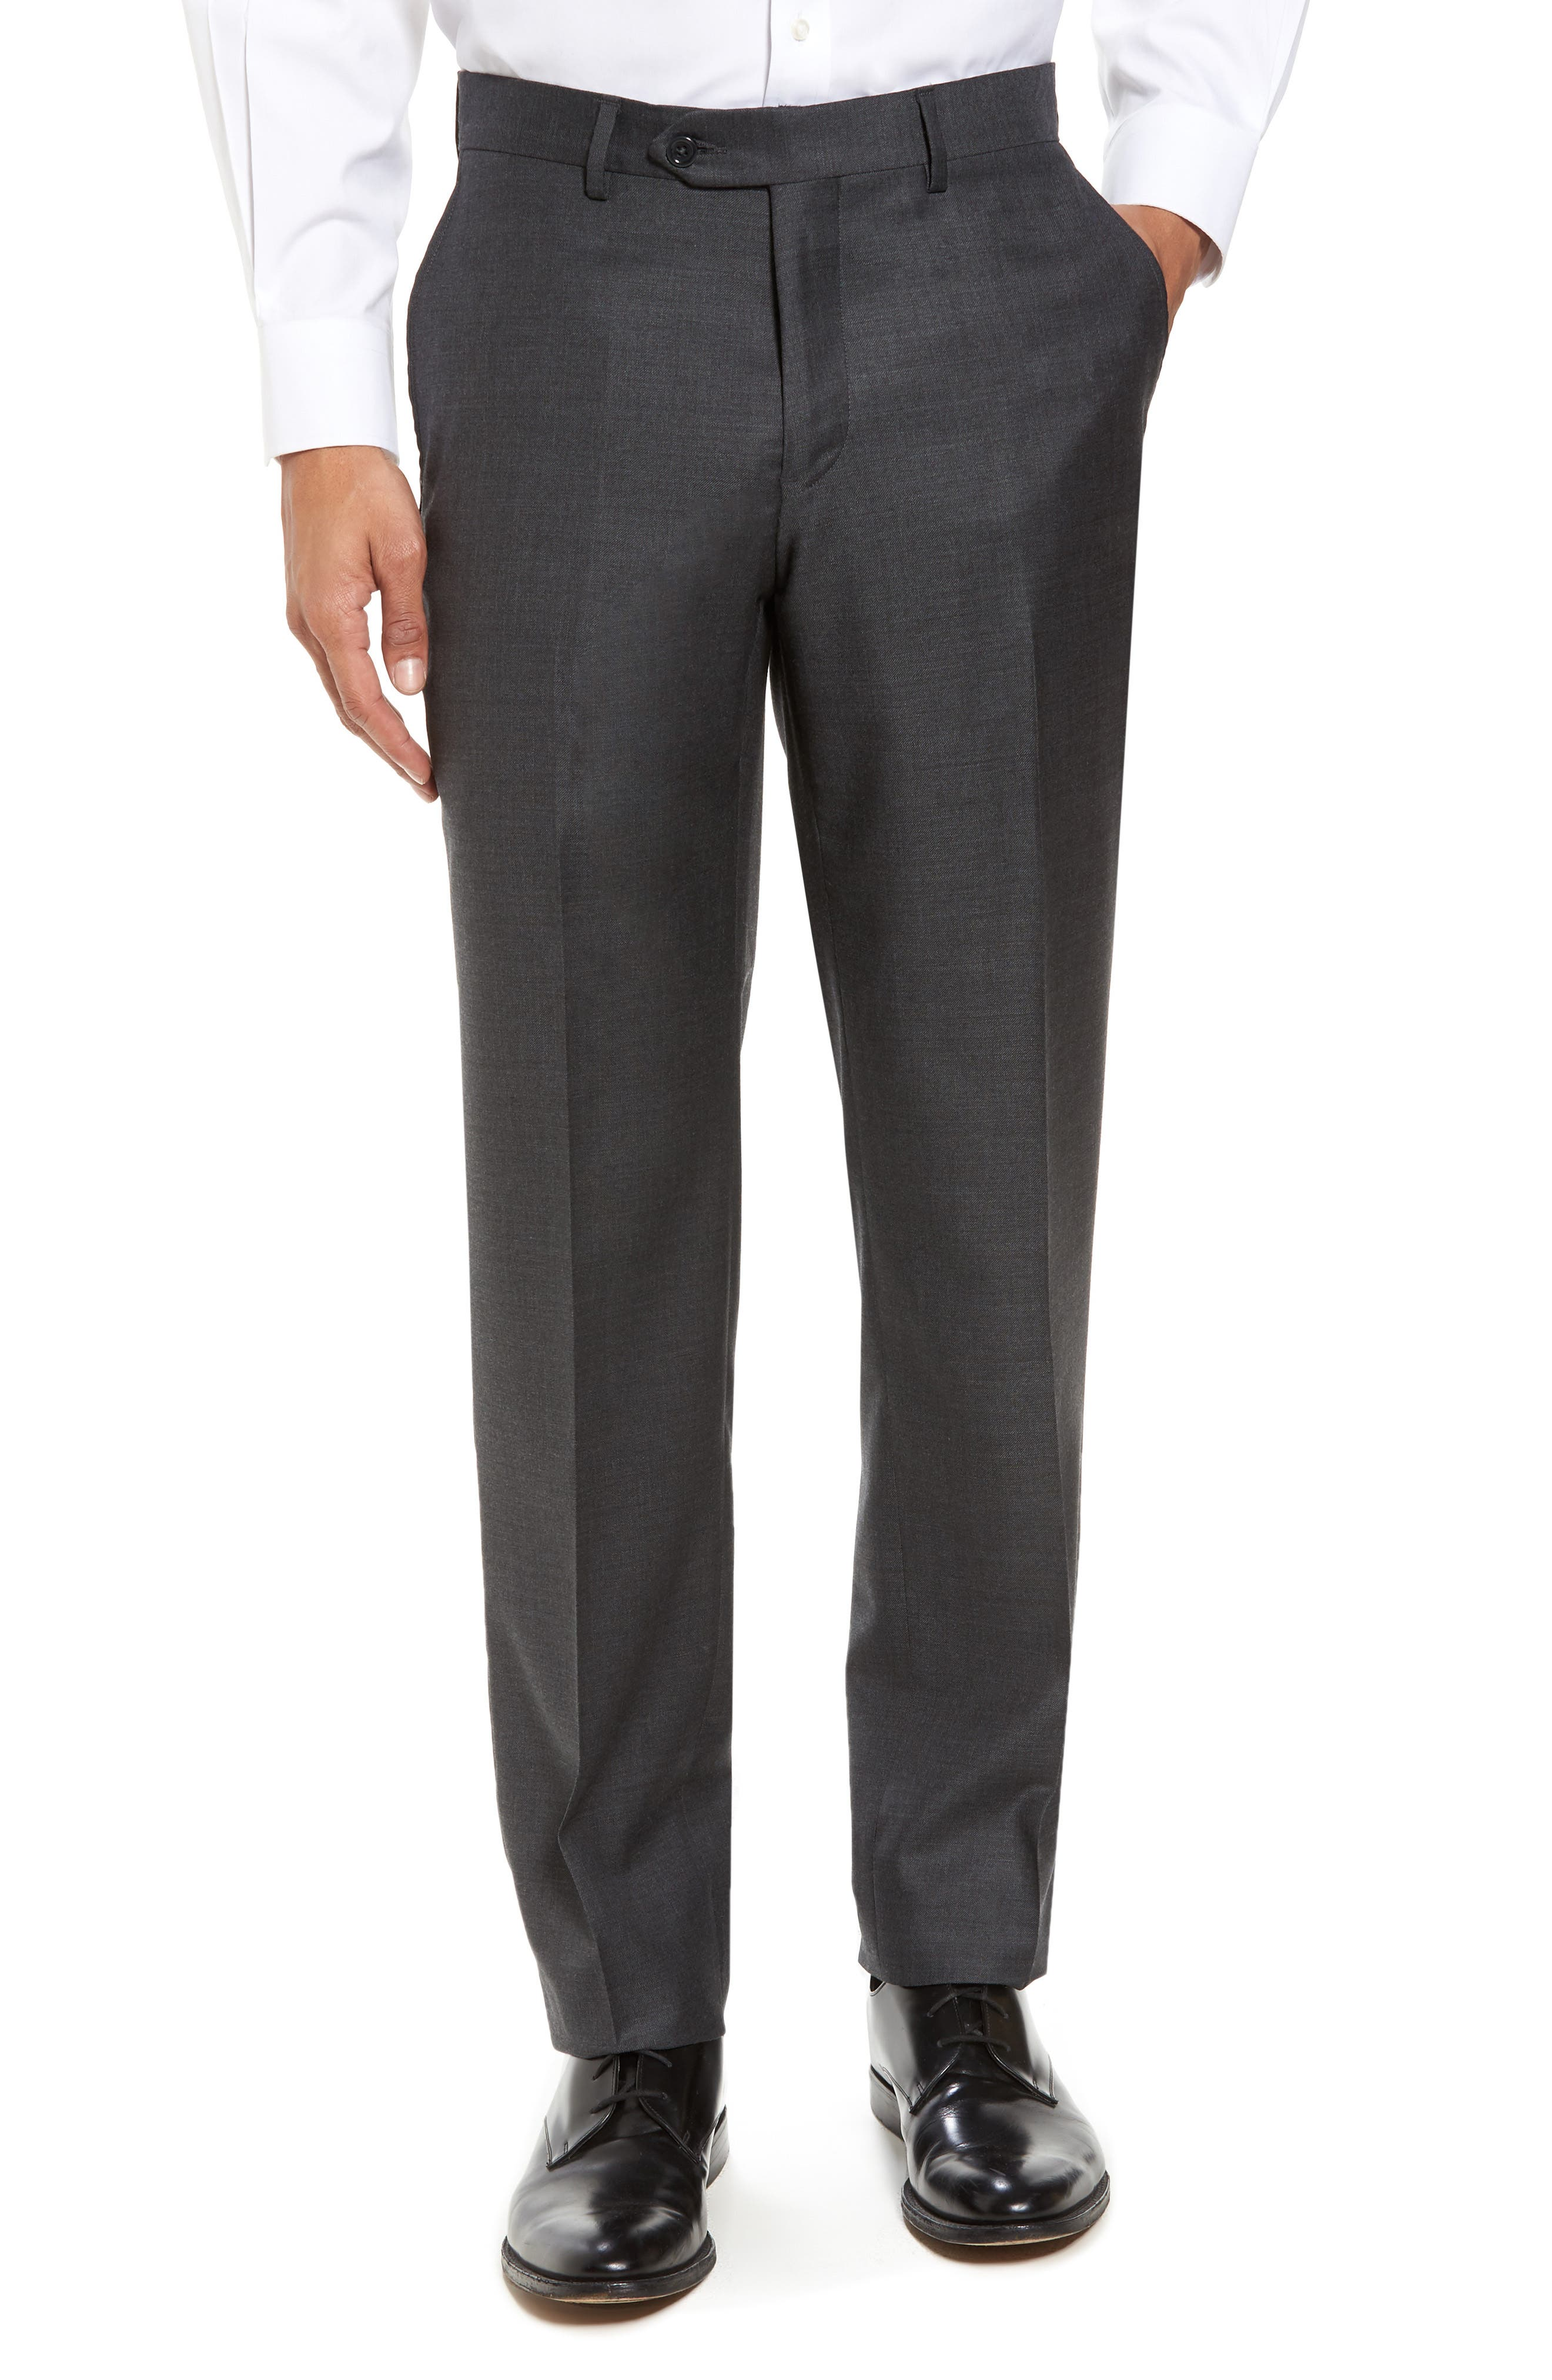 Flat Front Sharkskin Wool Trousers,                             Main thumbnail 1, color,                             Charcoal